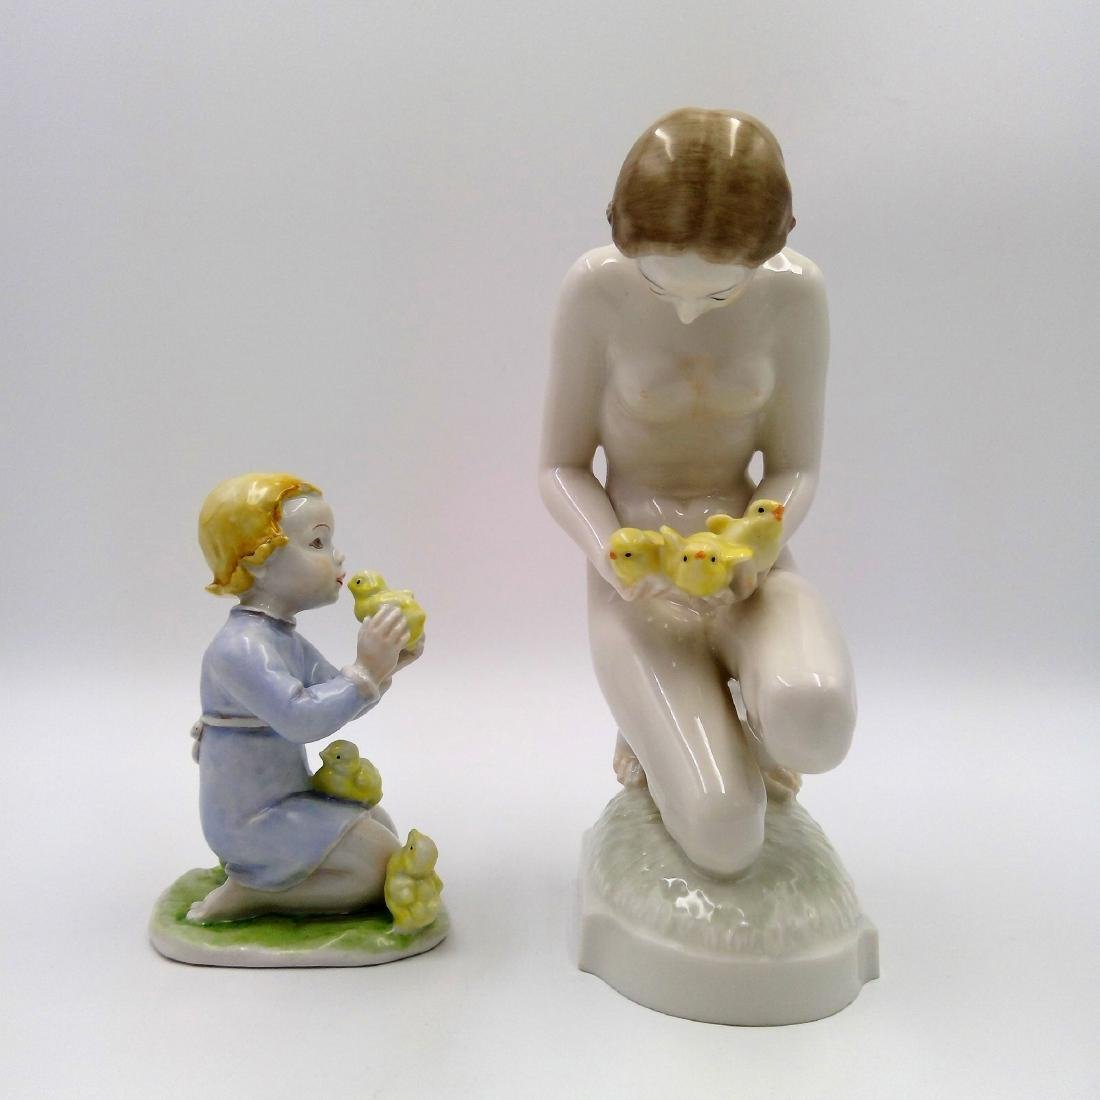 GROUP OF 2 ROSENTHAL & HUTSCHENREUTHER FIGURINES - 4